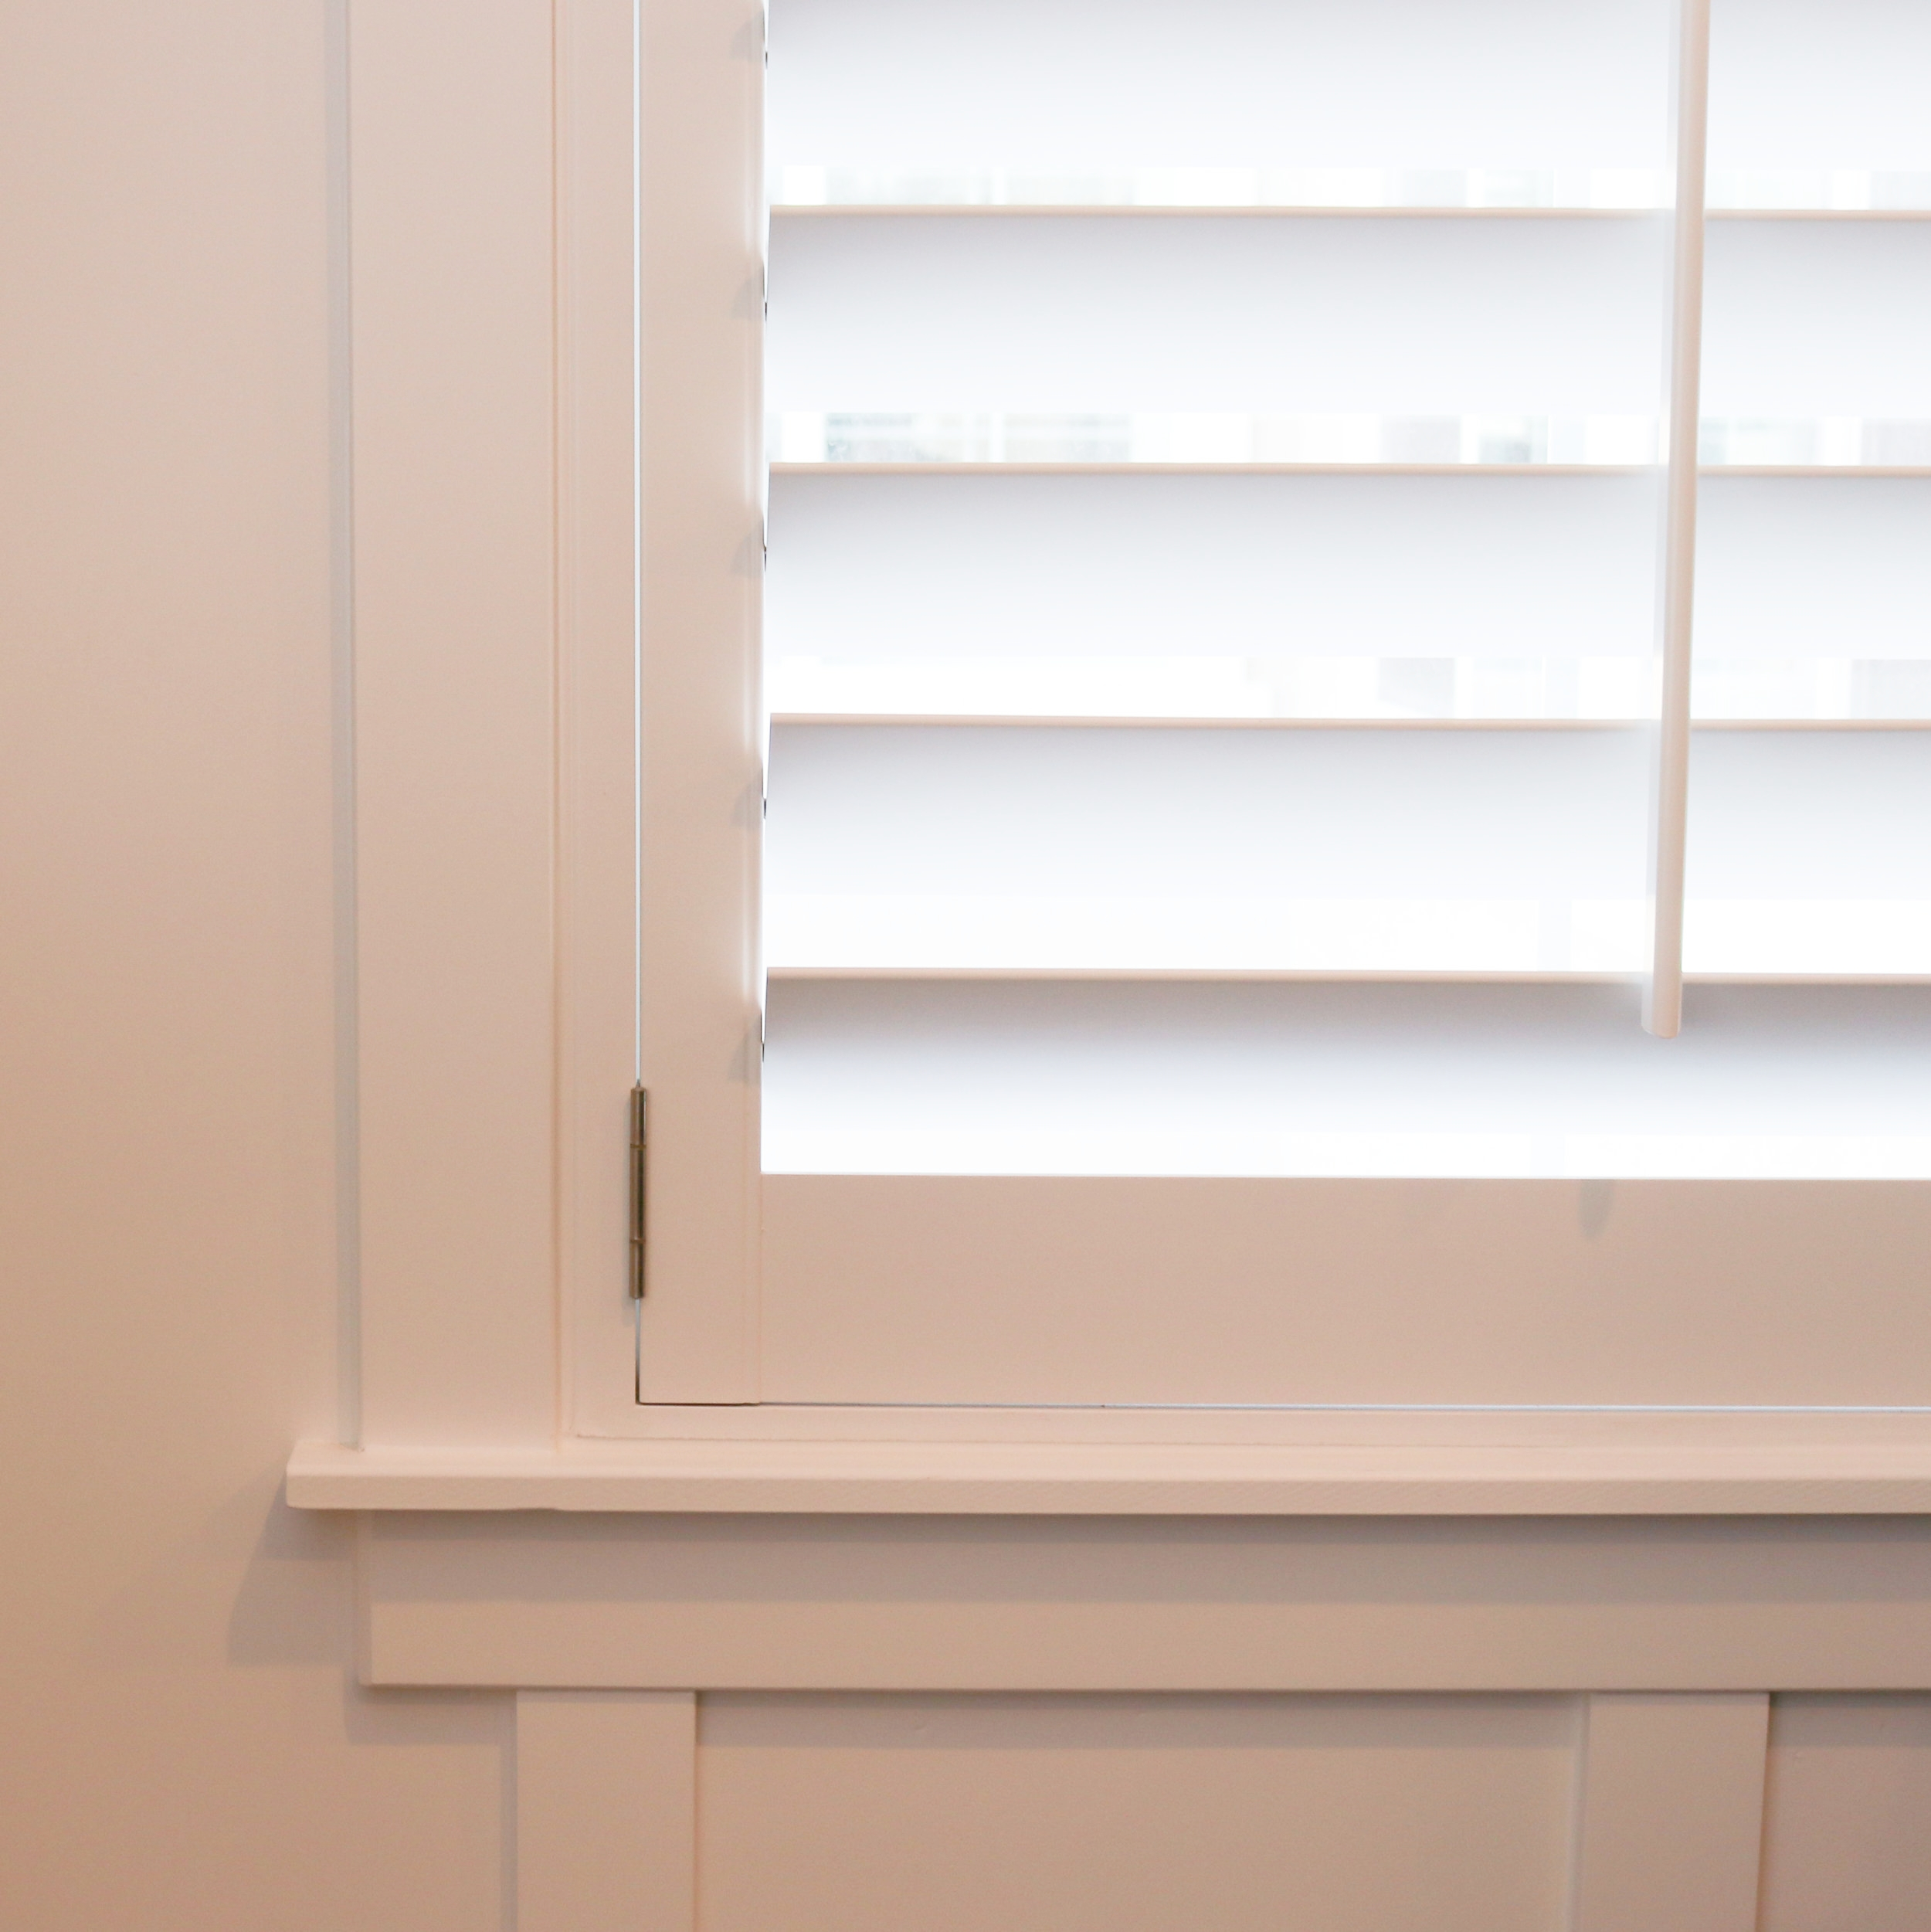 Small Z frame in modern casing, with wainscot